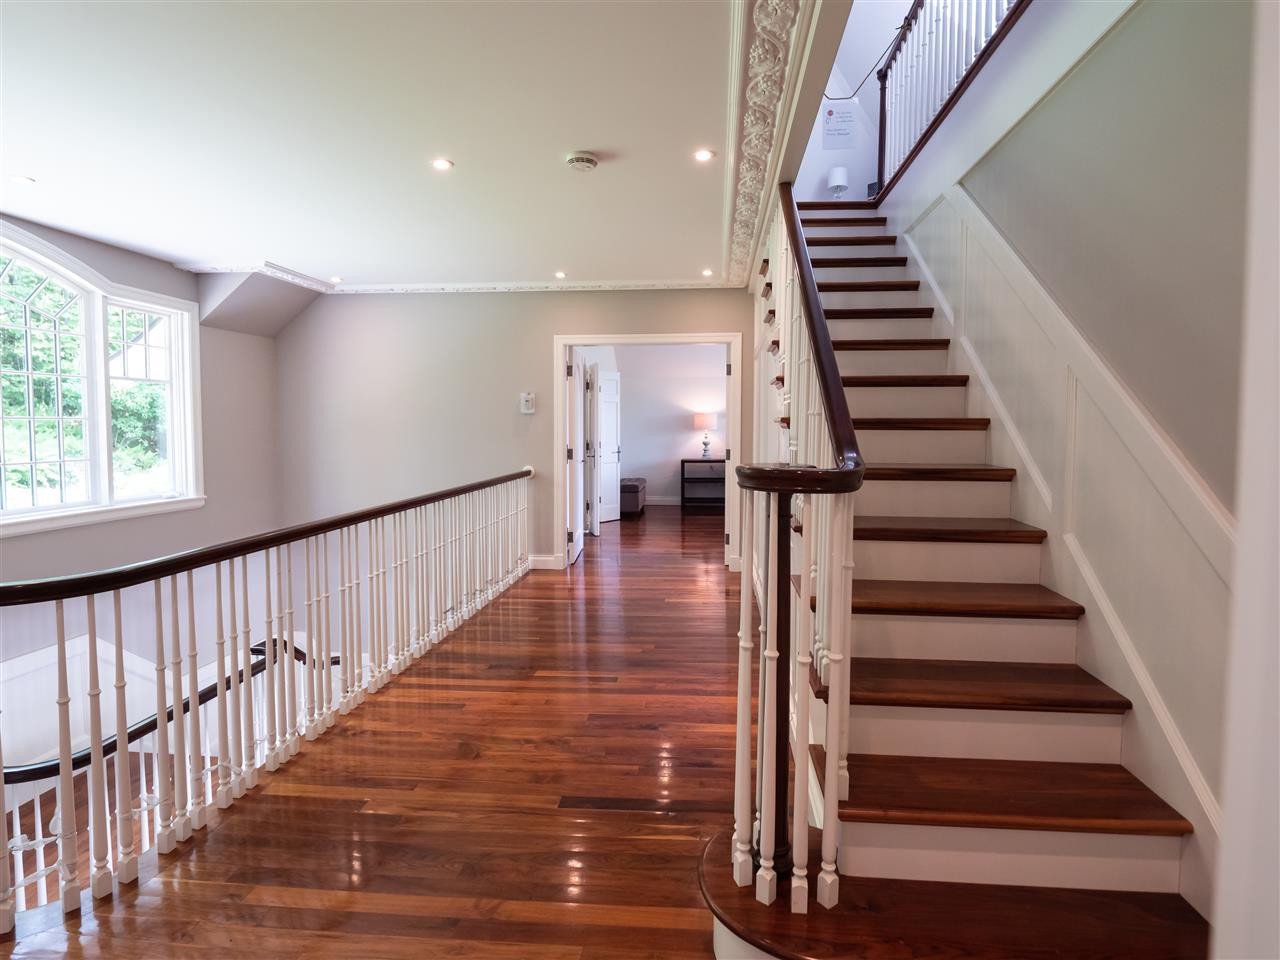 crescent hardwood flooring new orleans of stowe homes for sale search for your dream home in ma ct nh within vmont resd 4707041 36